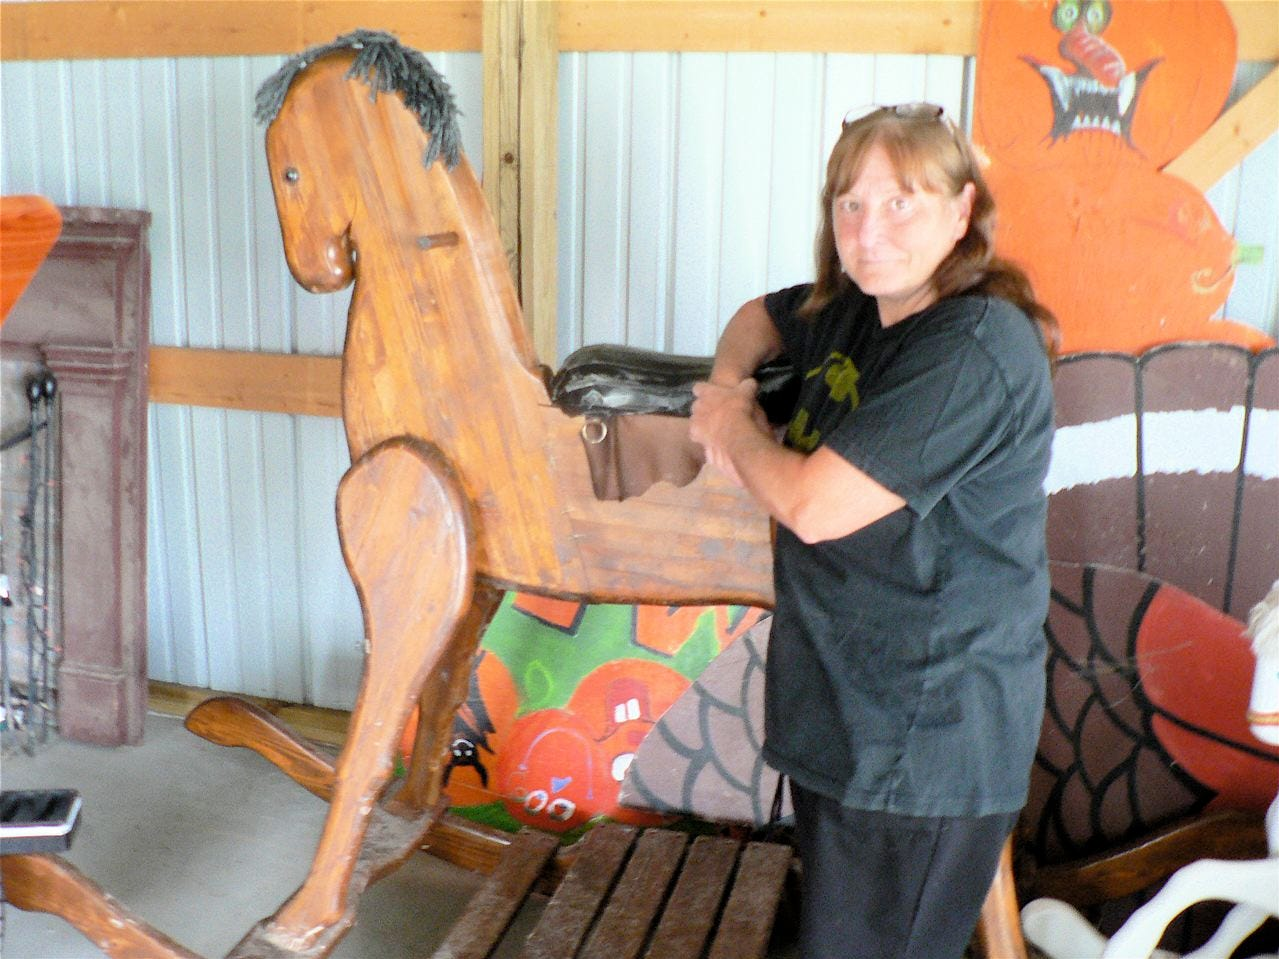 Want your picture taken with a six-foot rocking horse? Diane has the horse.